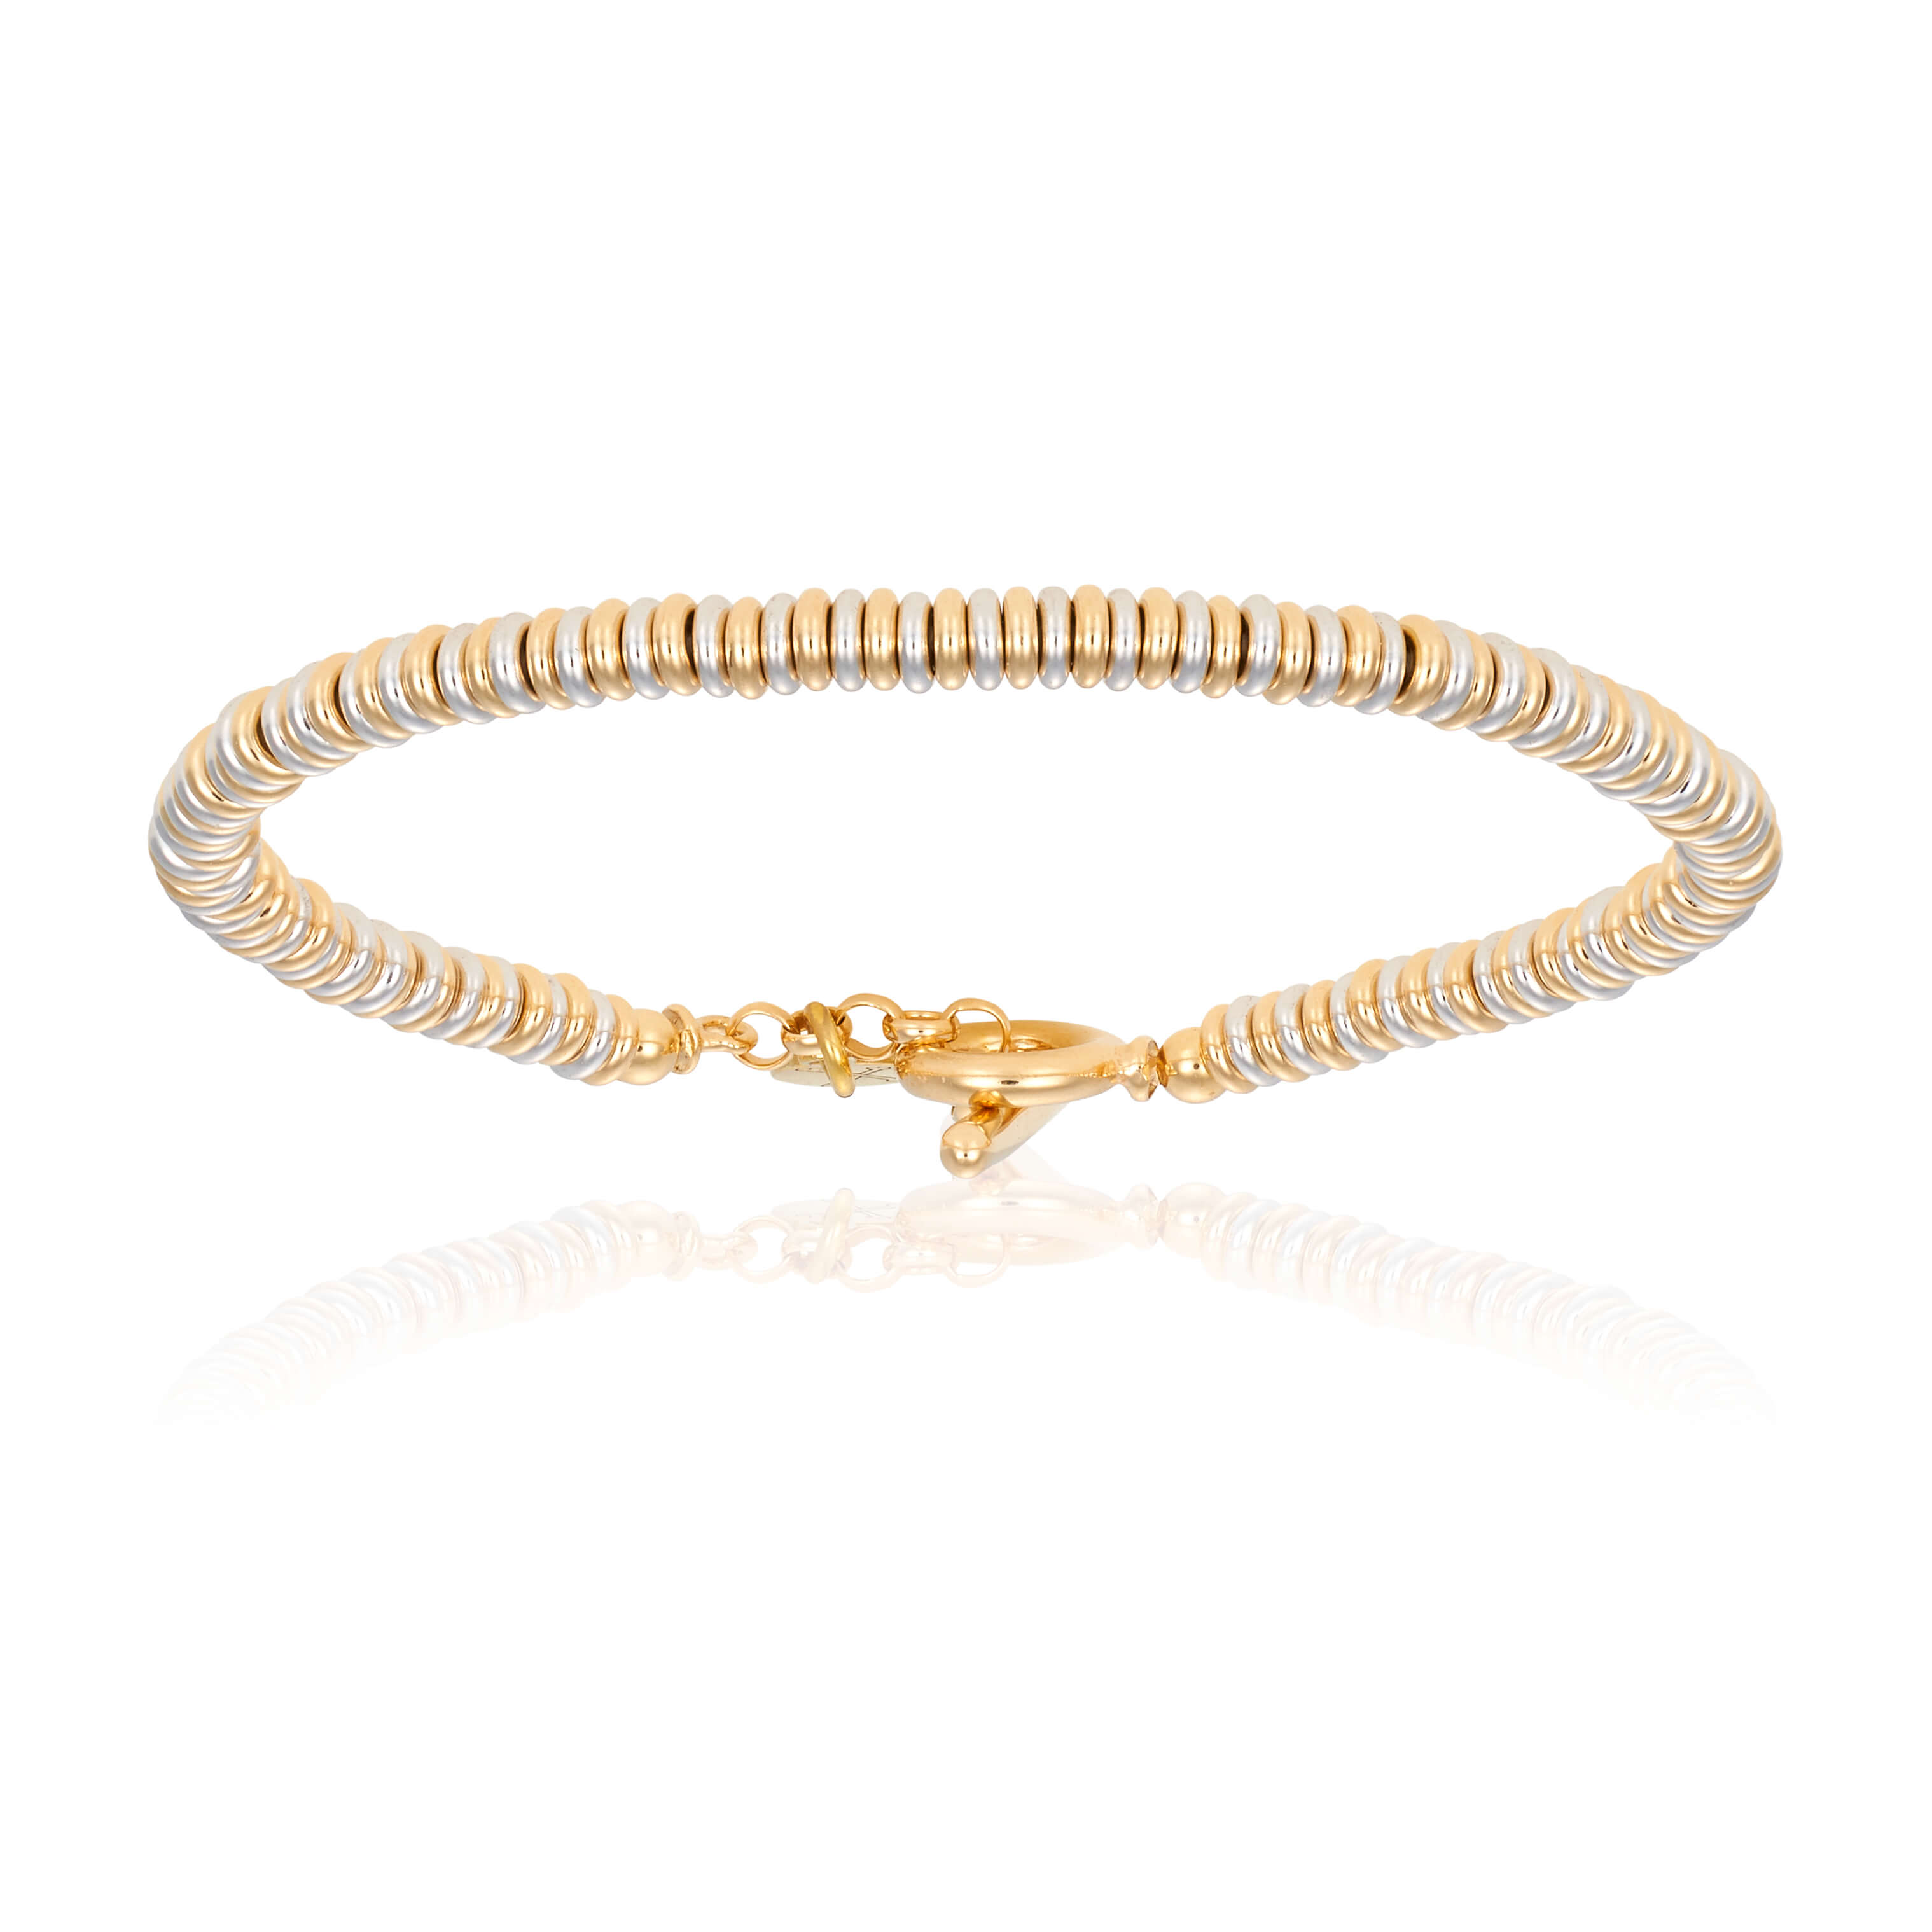 White gold bracelet with yellow gold beads (Unisex)